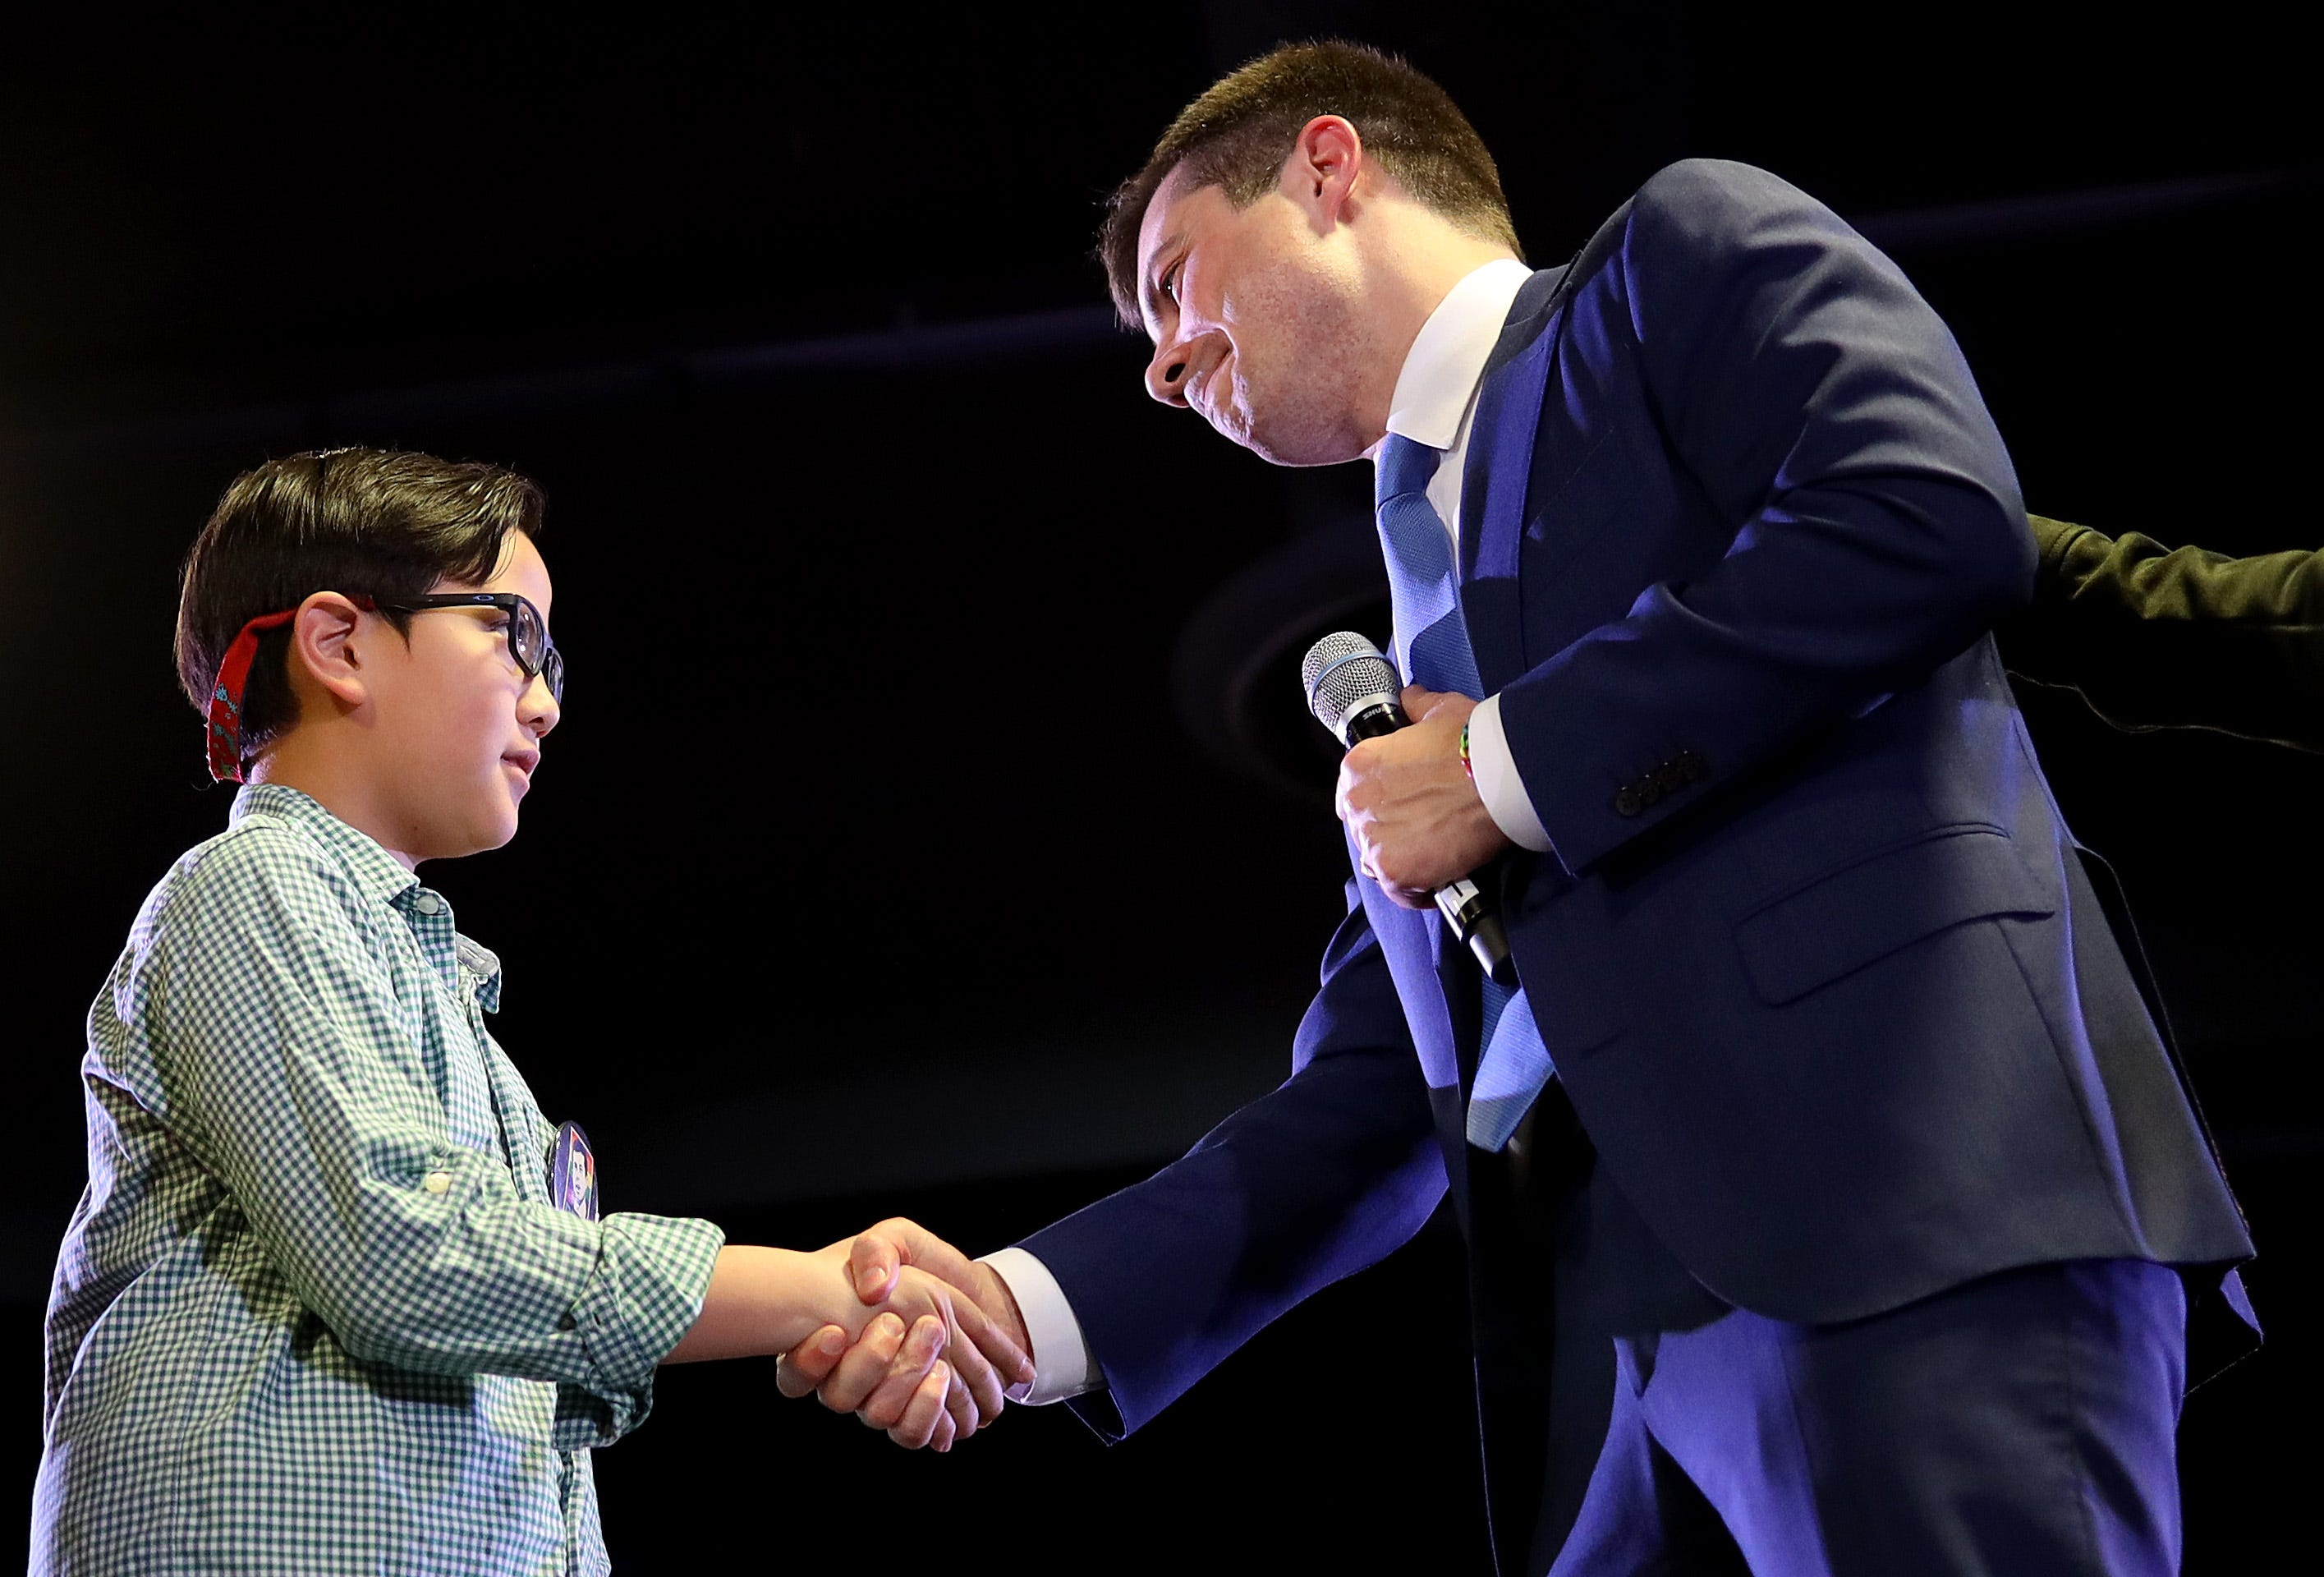 I want to be brave like you : Boy, 9, asks Pete Buttigieg for help coming out as gay